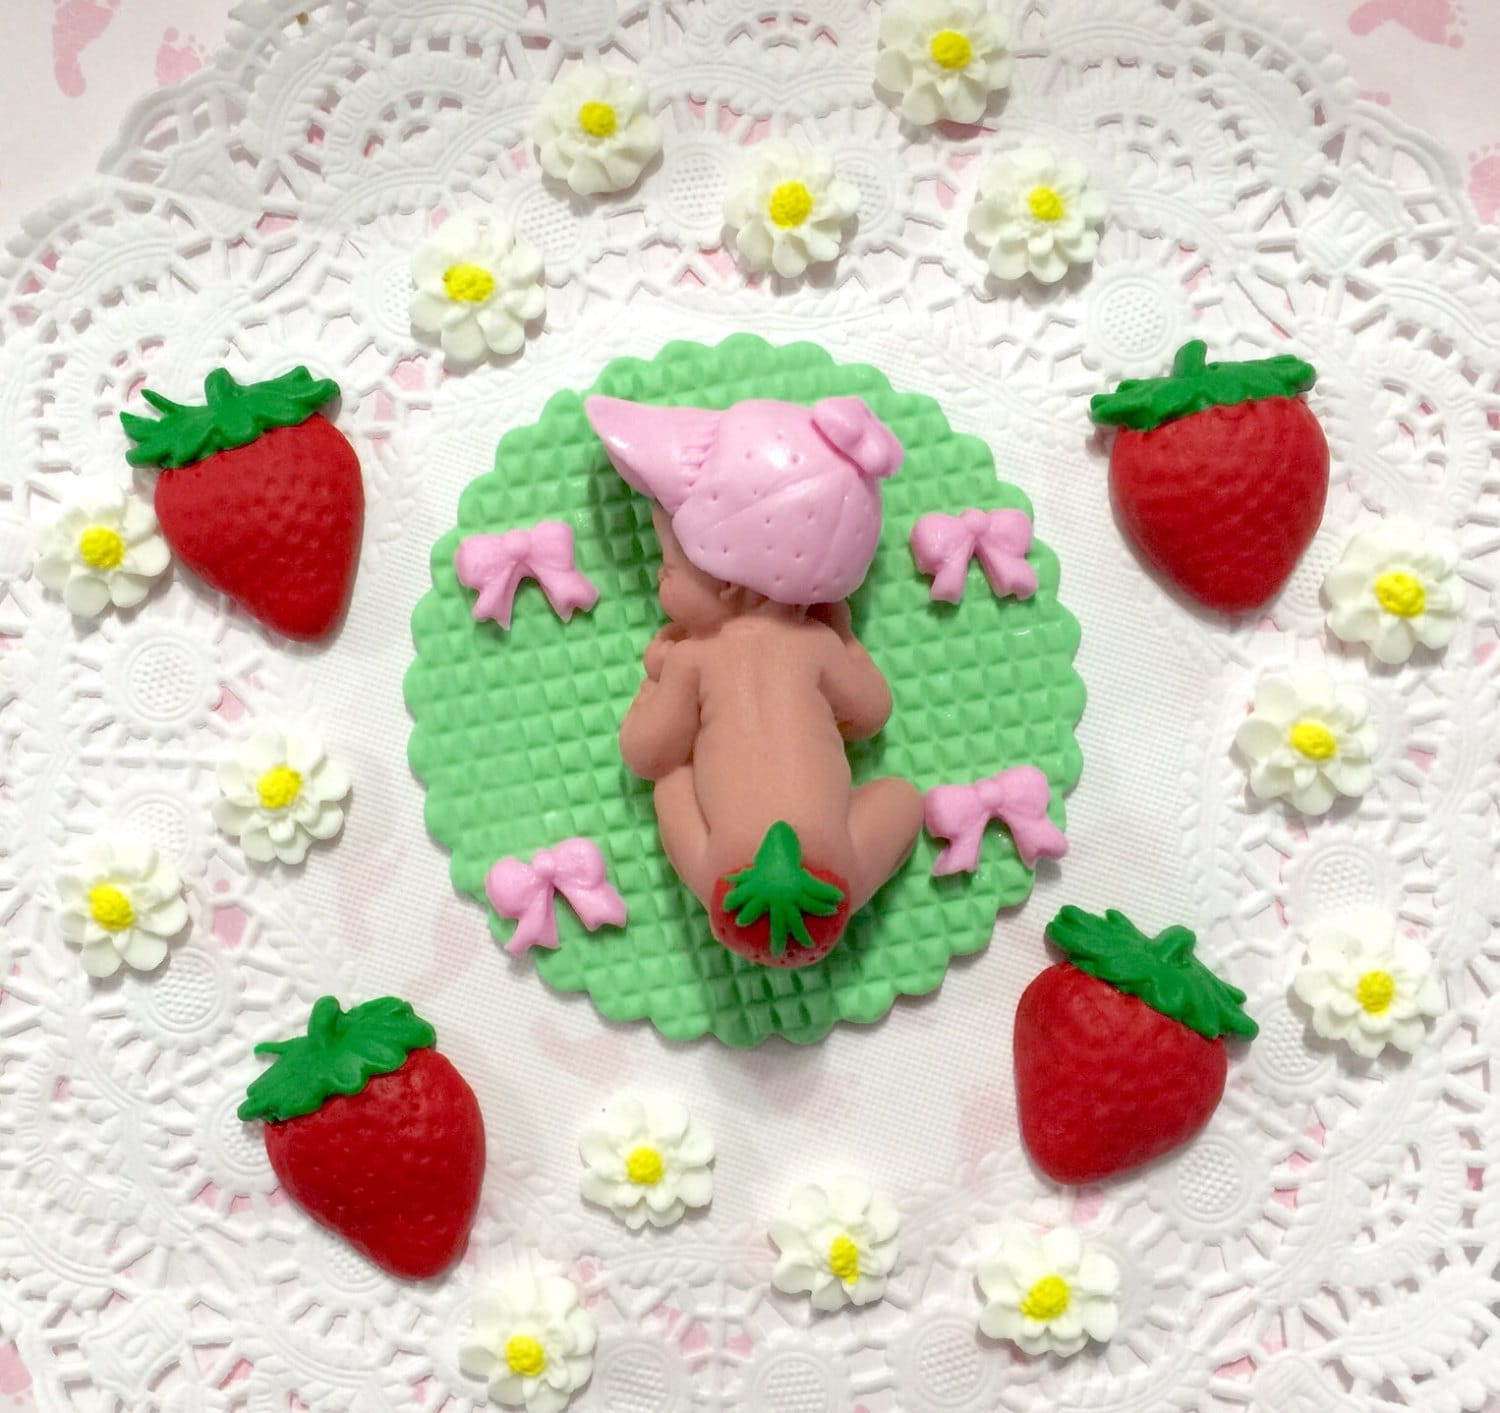 Strawberry Shortcake baby for your special day.. Birthday